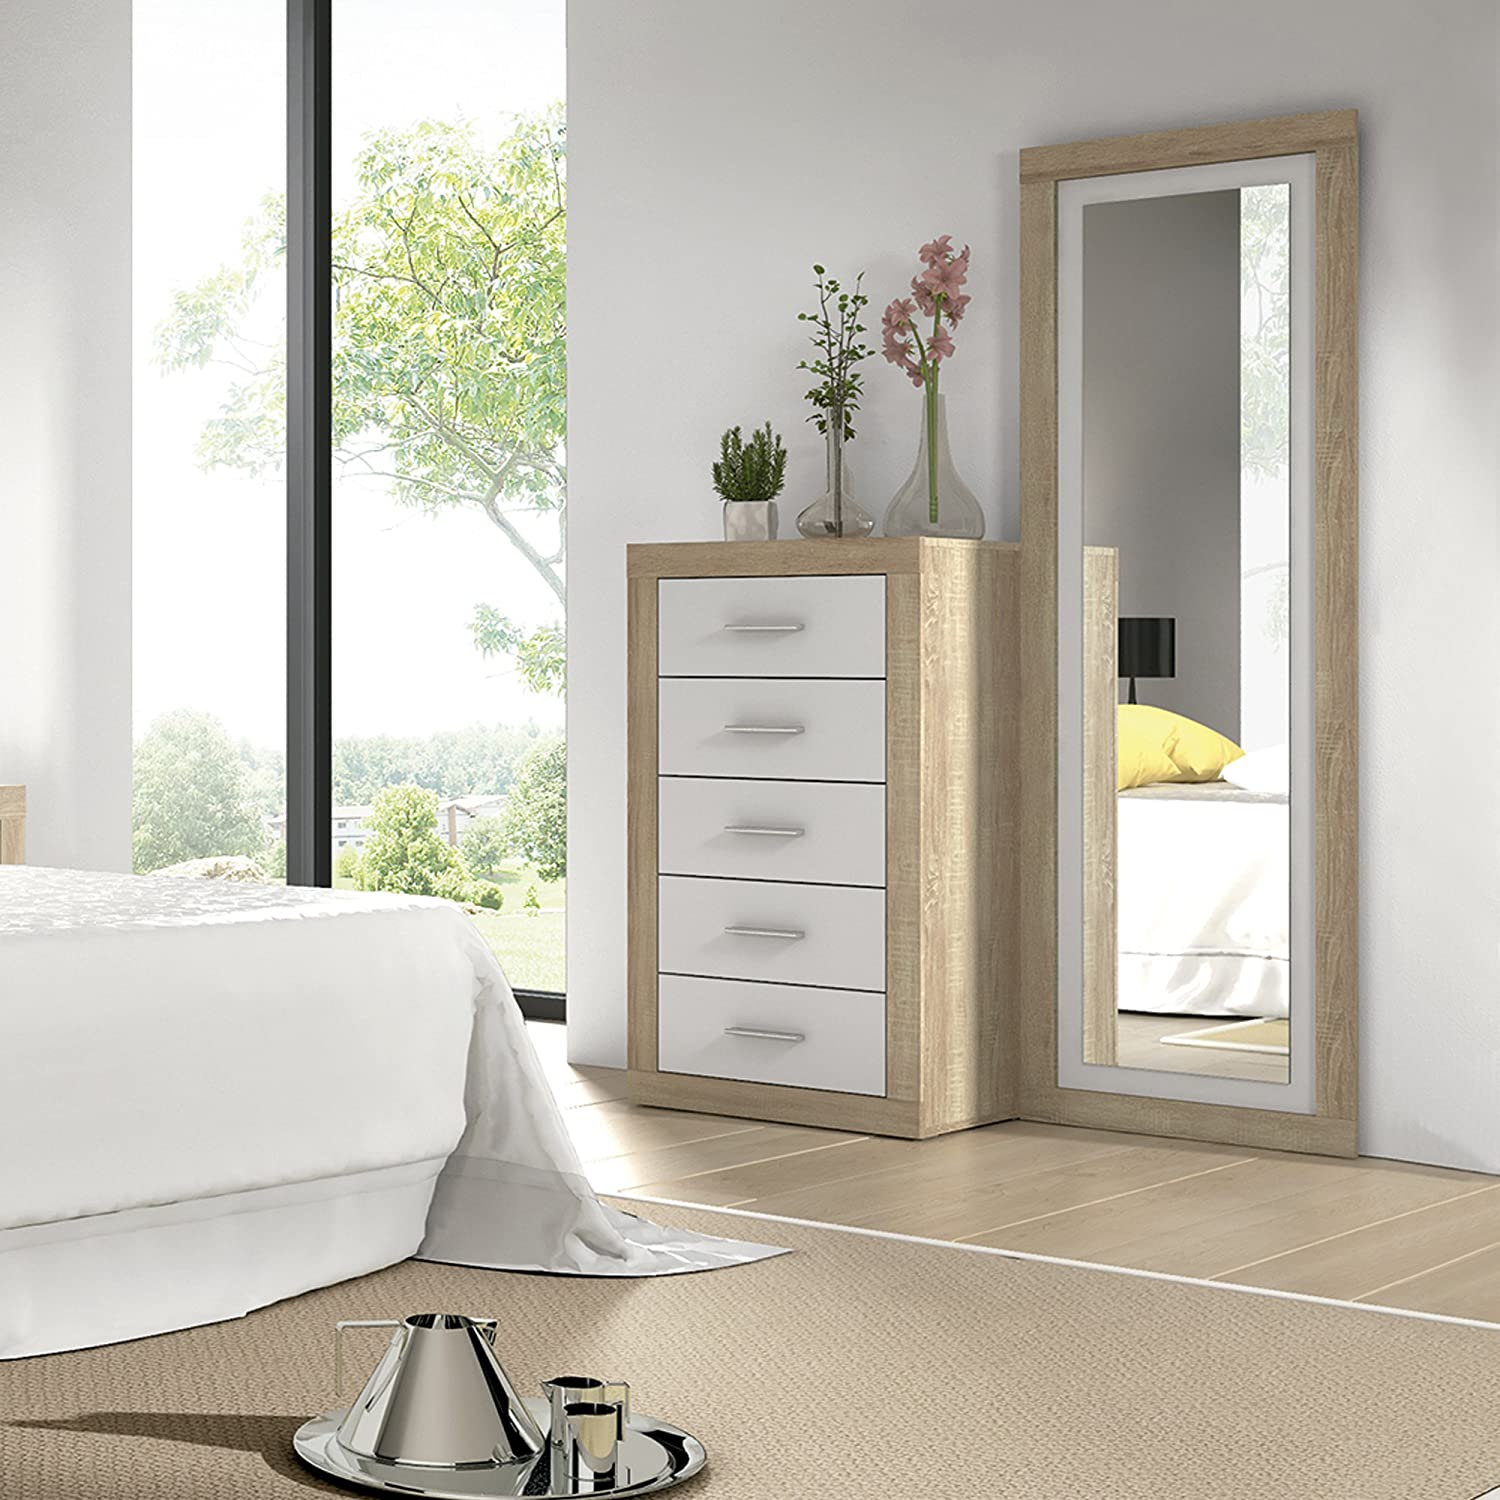 HomeSouth - cinco cajones, comoda dormitorio modelo Lara, color Cambria y Blanco